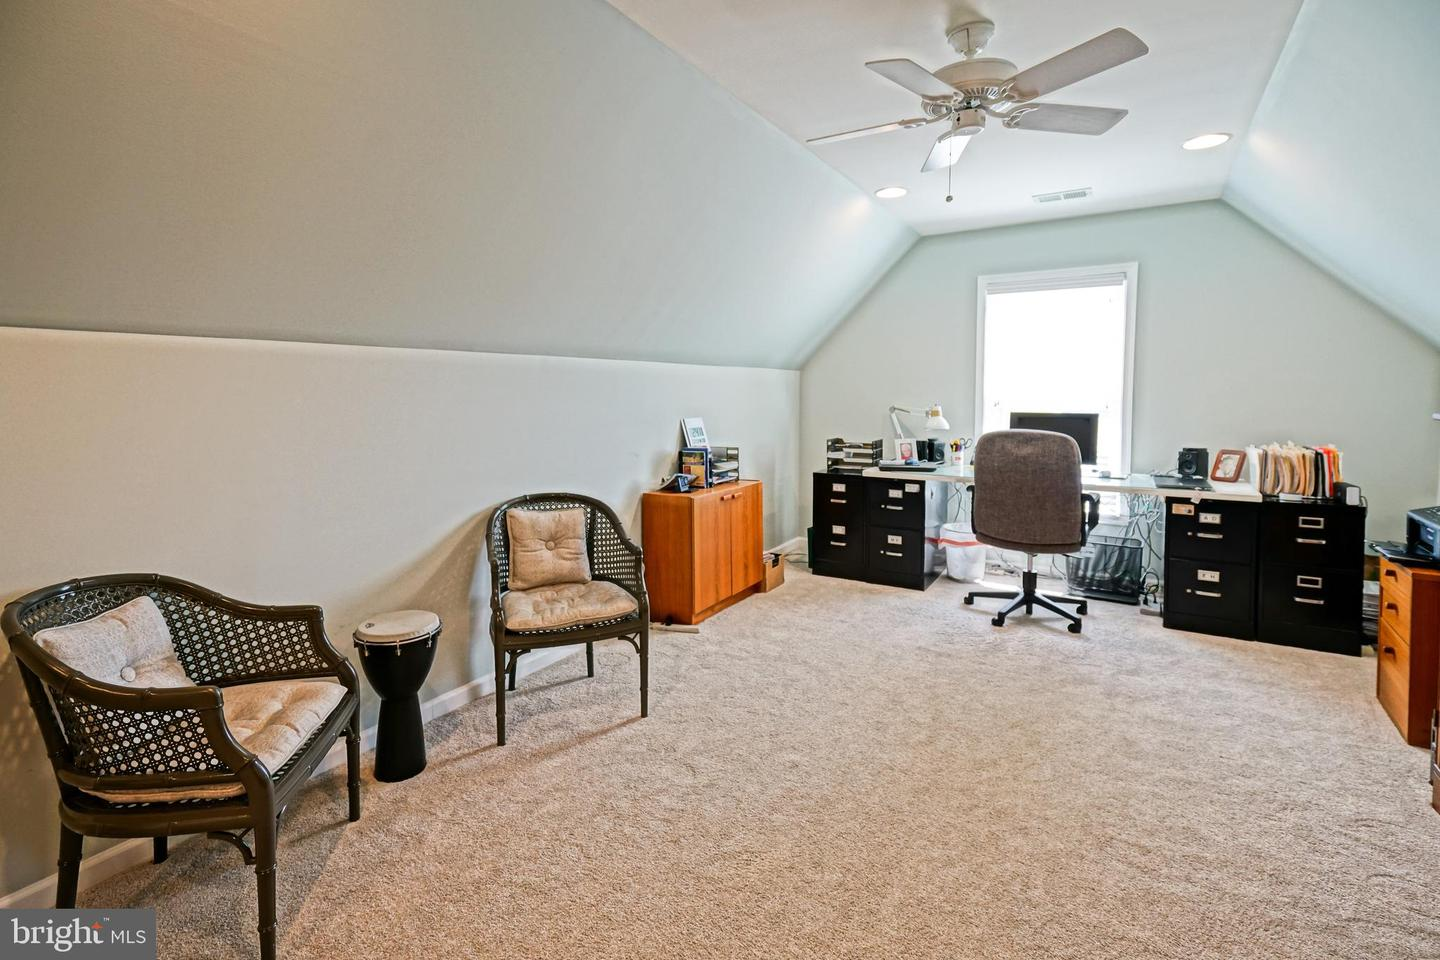 DESU139128-301667384142-2019-08-05-10-43-56 35222 Overfalls Dr N | Lewes, DE Real Estate For Sale | MLS# Desu139128  - Lee Ann Group